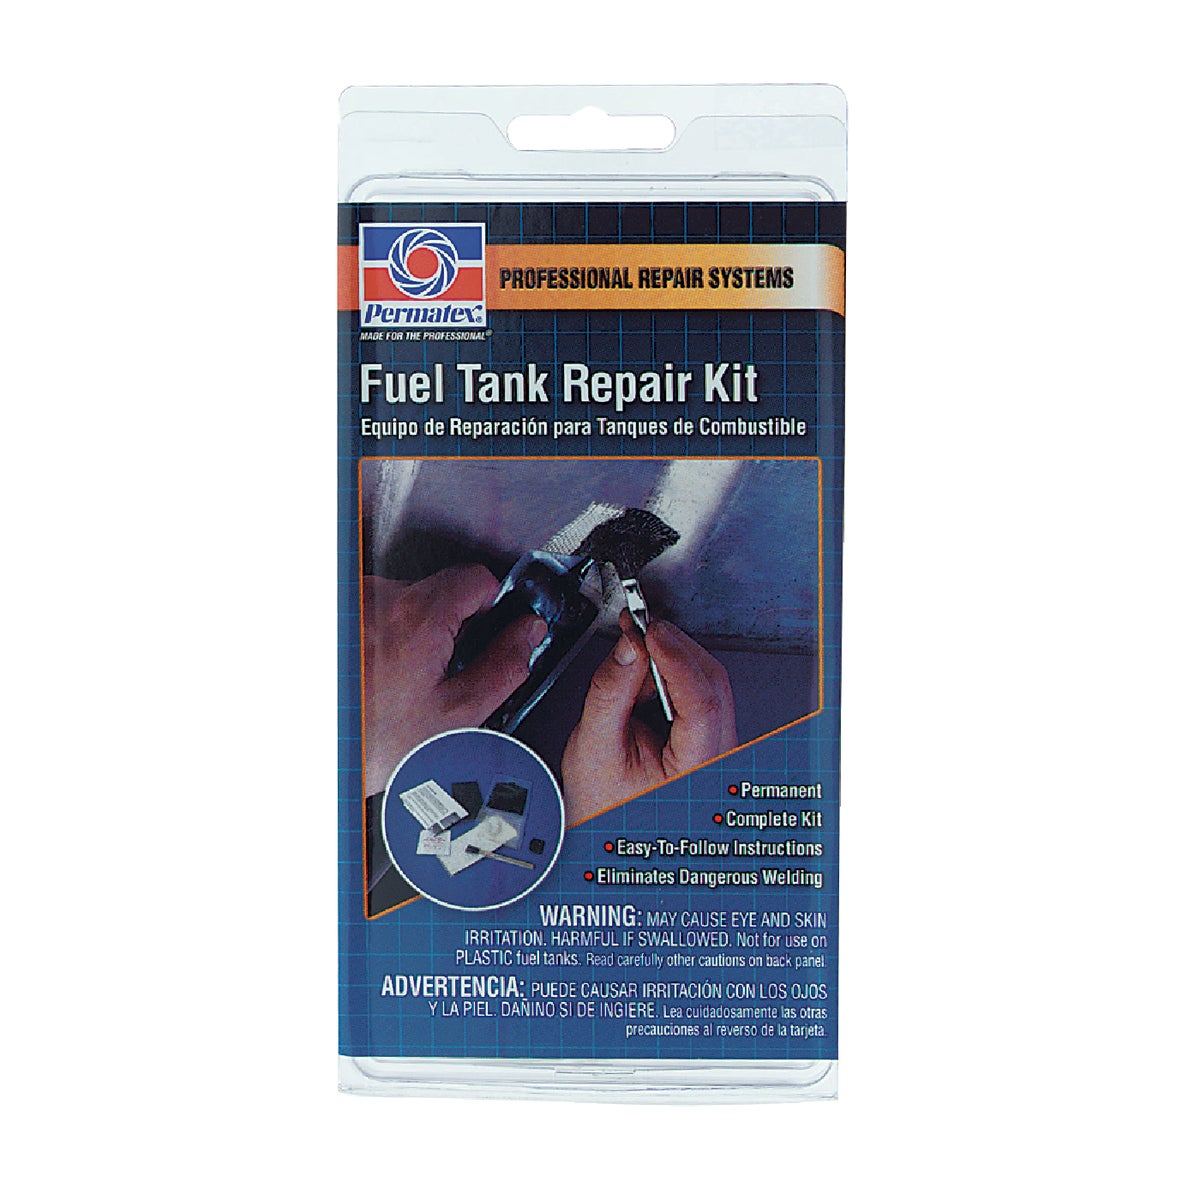 FUEL TANK REPAIR KIT - 09101 by Itw Global Brands